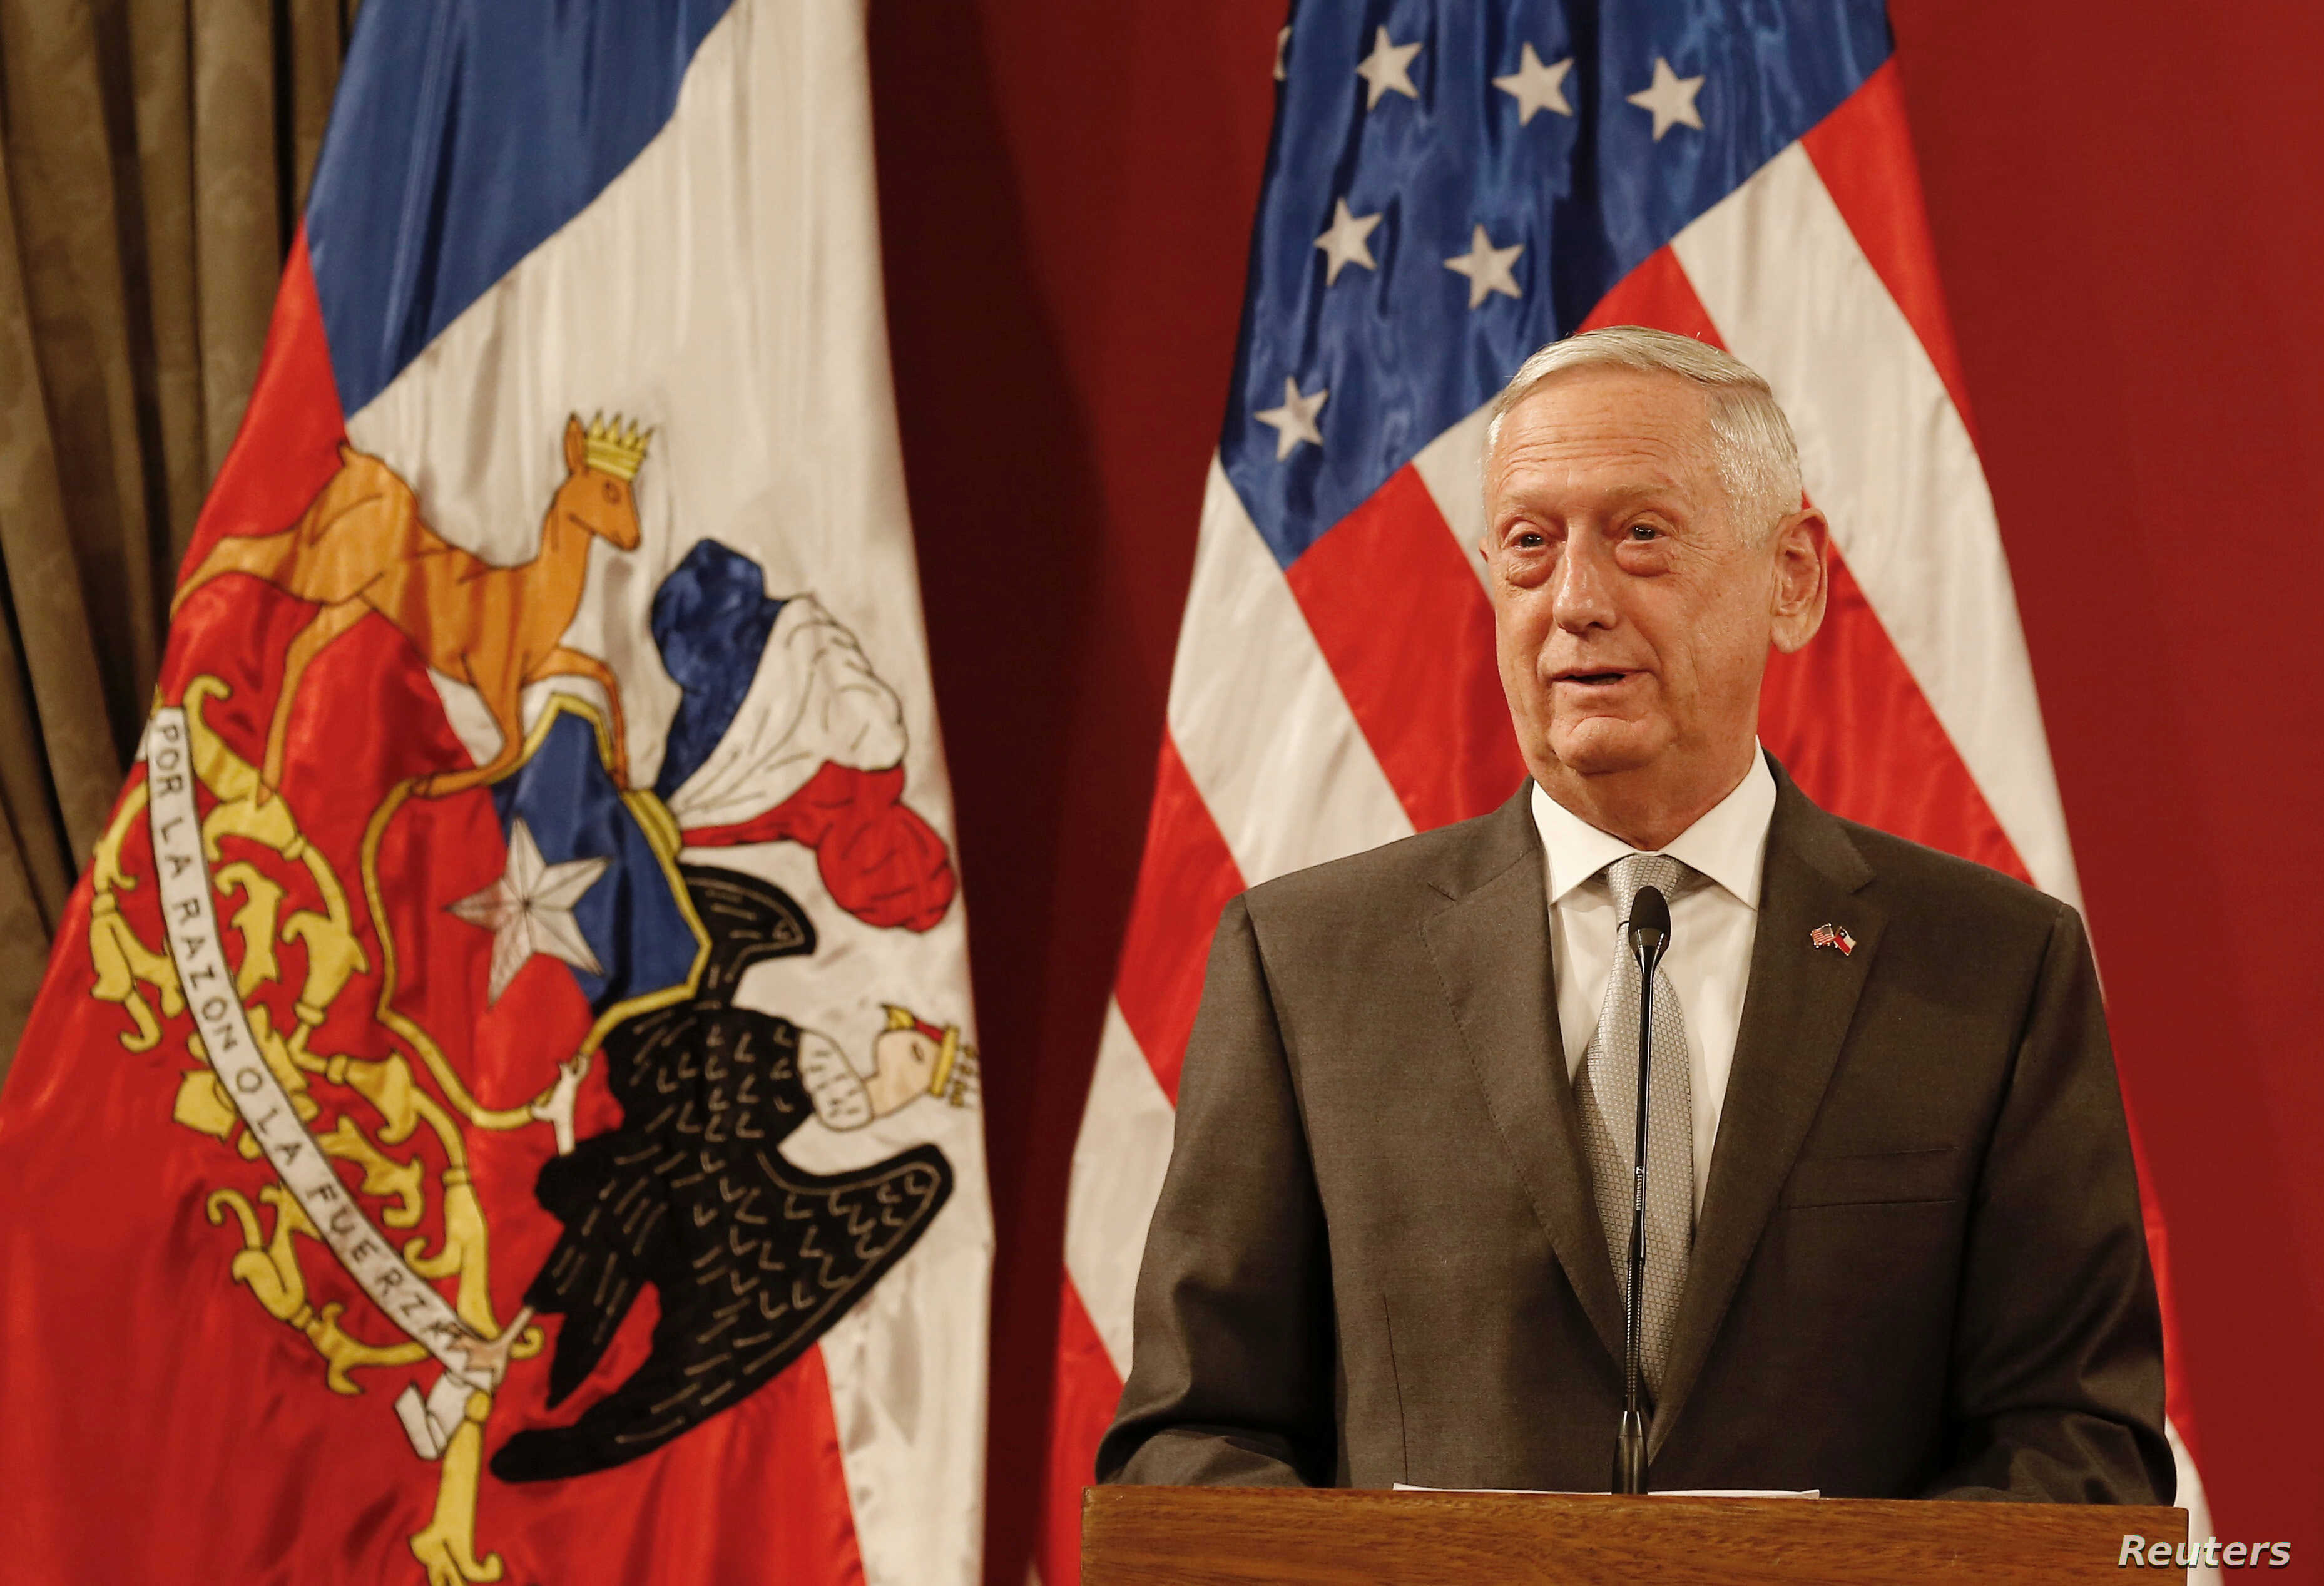 U.S. Defense Minister James Mattis speaks next to Chilean Defense Minister Alberto Espina (not pictured) after signing exchange agreements, during a meeting at La Moneda Presidential Palace in Santiago, Chile Aug. 16, 2018.